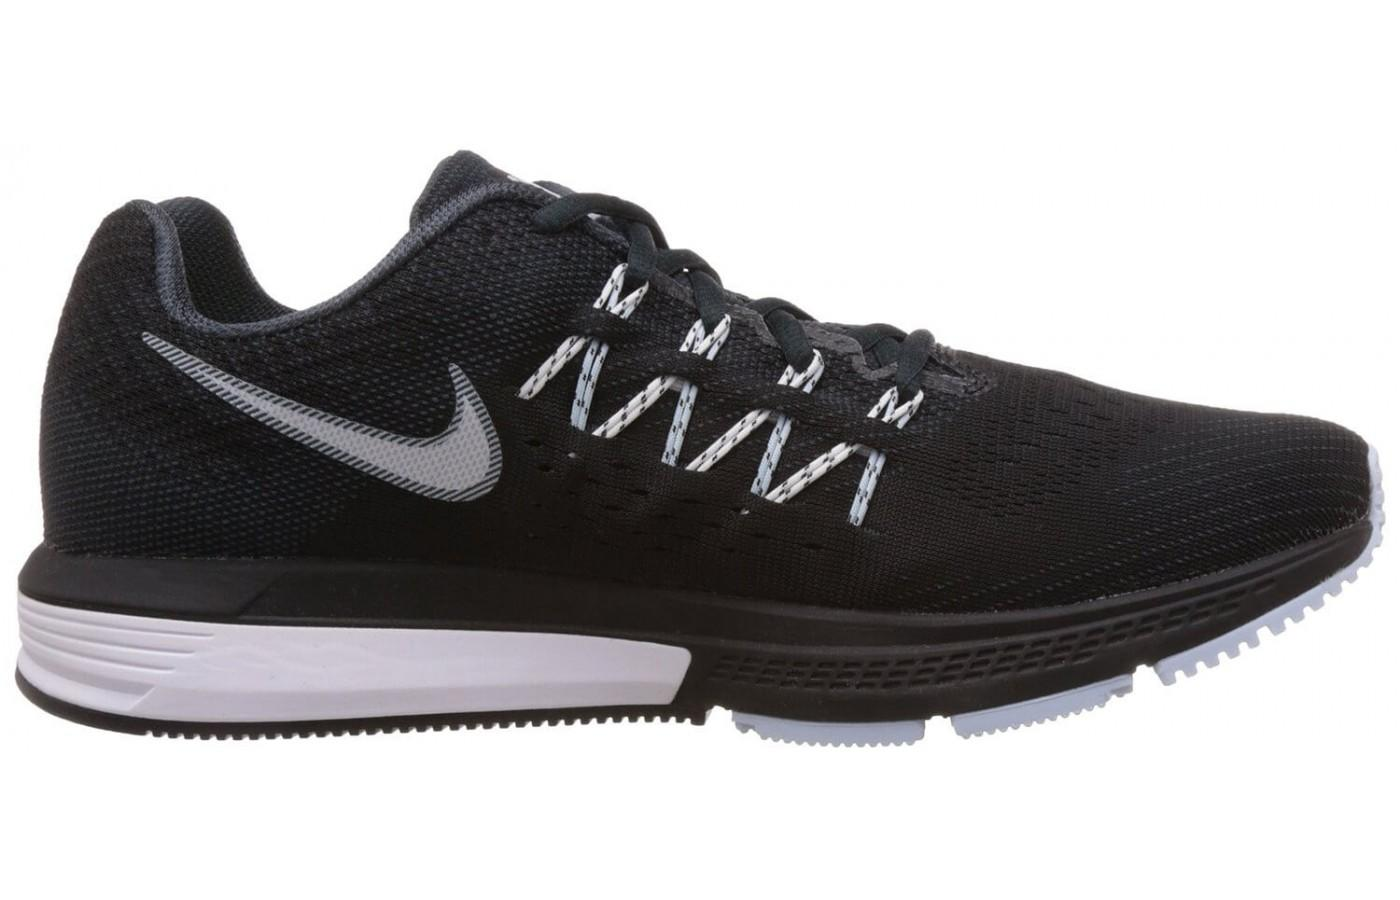 b670a9aaa7ec0 ... Nike Air Zoom Vomero 10 has a midsole made of lightweight Cushlon foam.